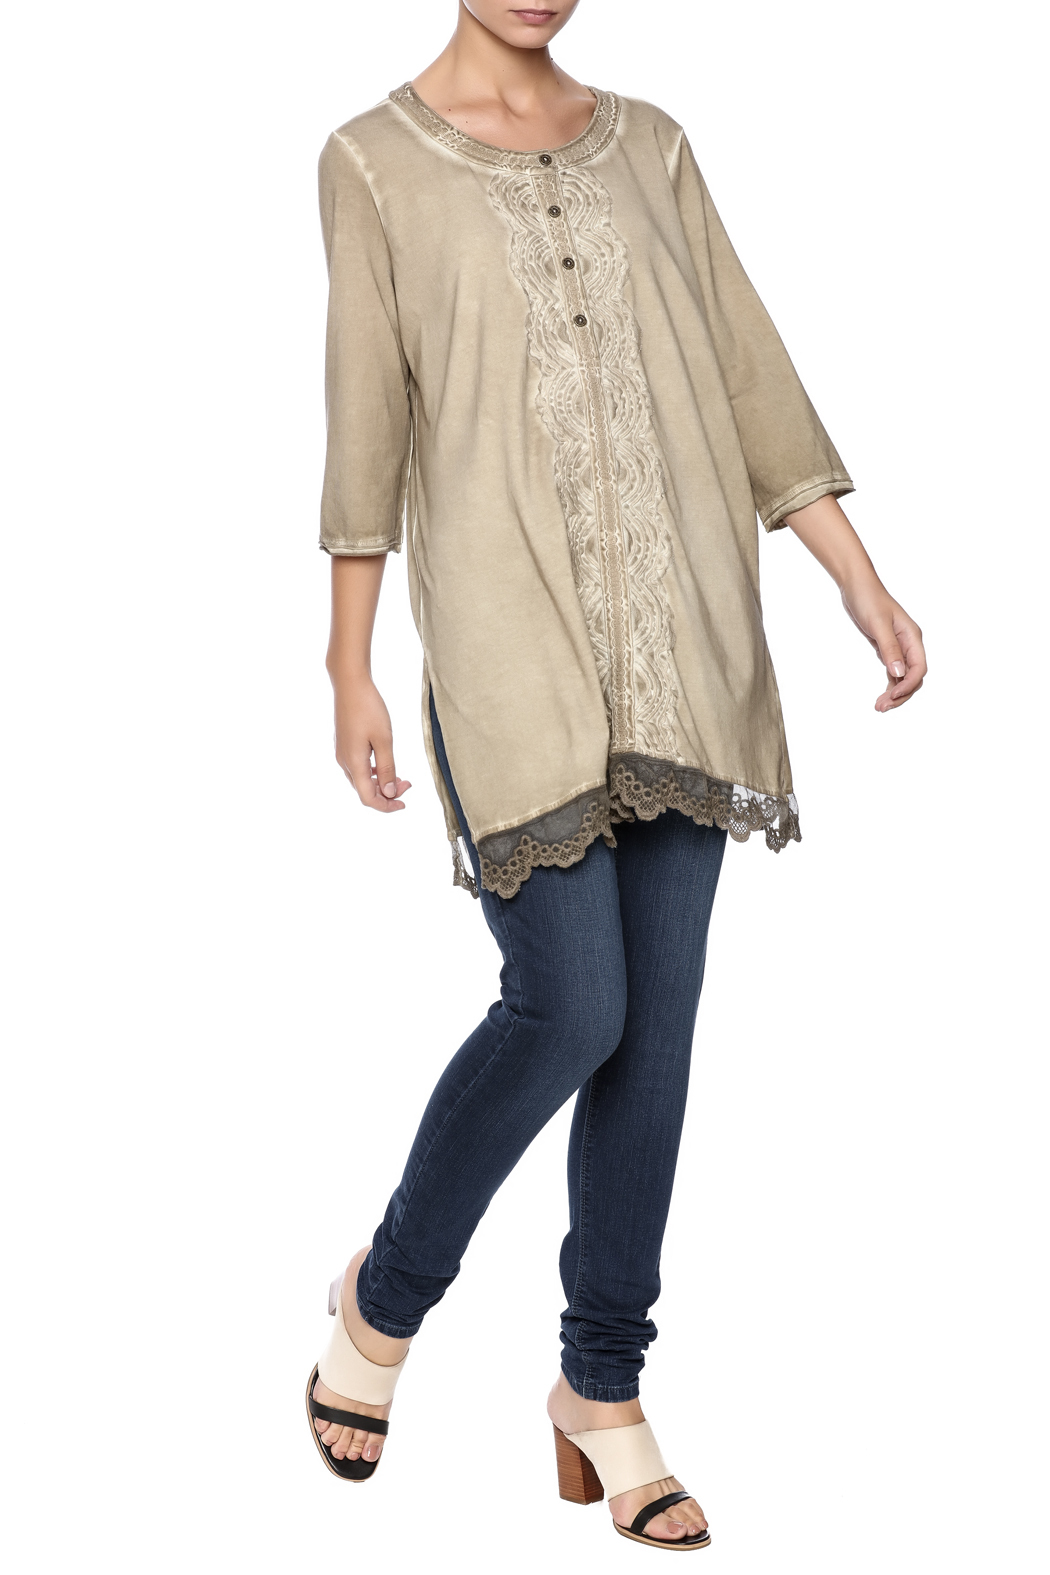 Gretty Zuegar Embroidered Sand Tunic - Front Full Image